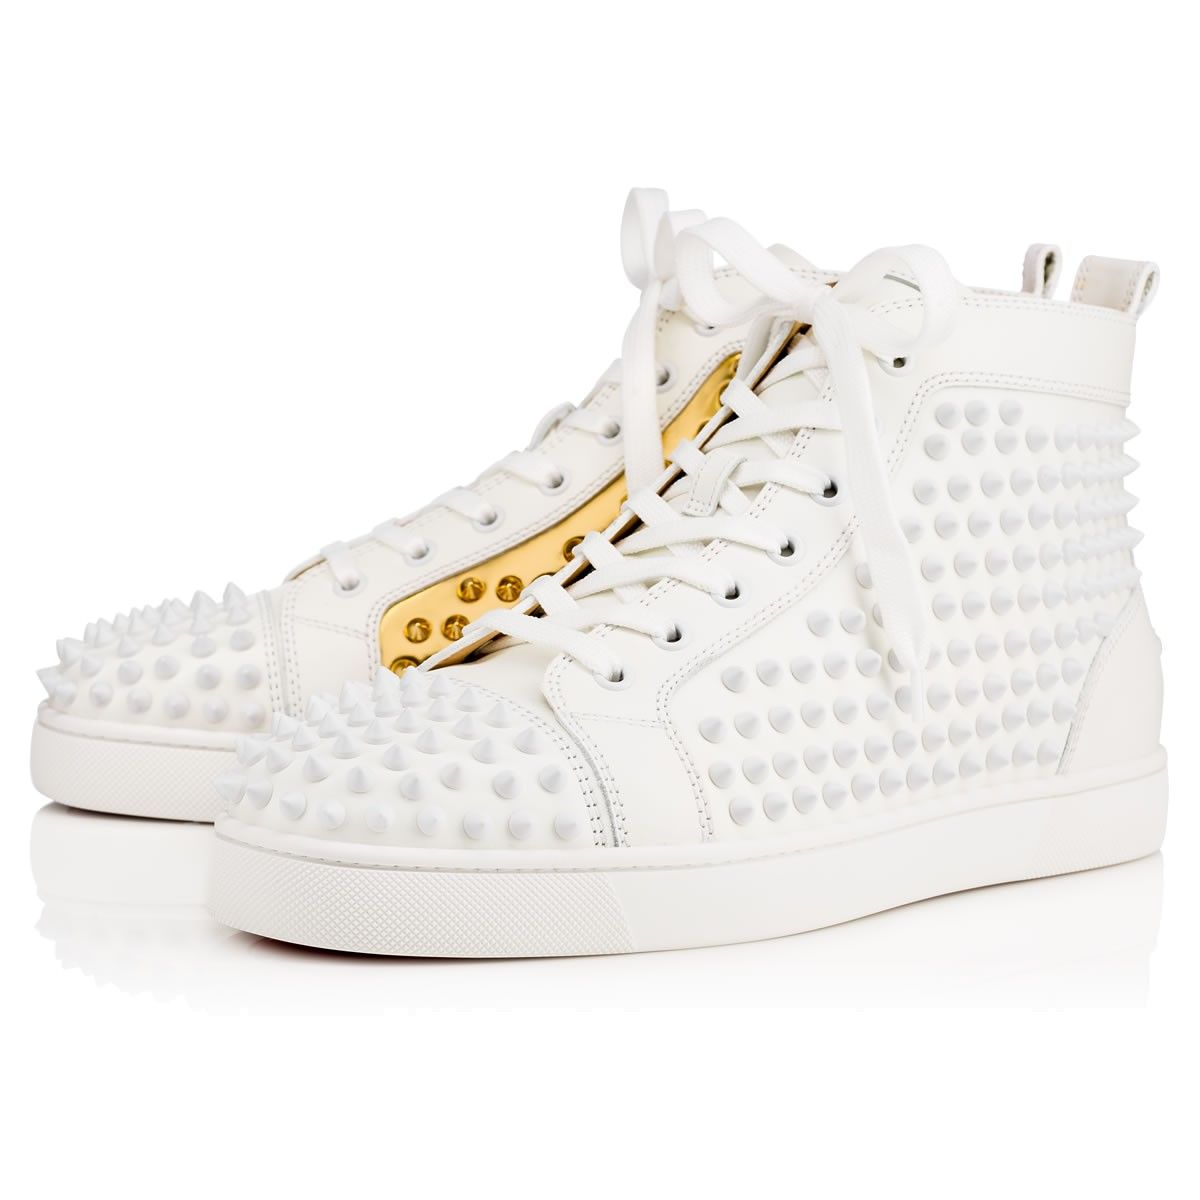 68e71acf9c3b0 CHRISTIAN LOUBOUTIN Louis Spikes Men s Flat Latte Gold Leather - Men Shoes  - Christian Louboutin.  christianlouboutin  shoes